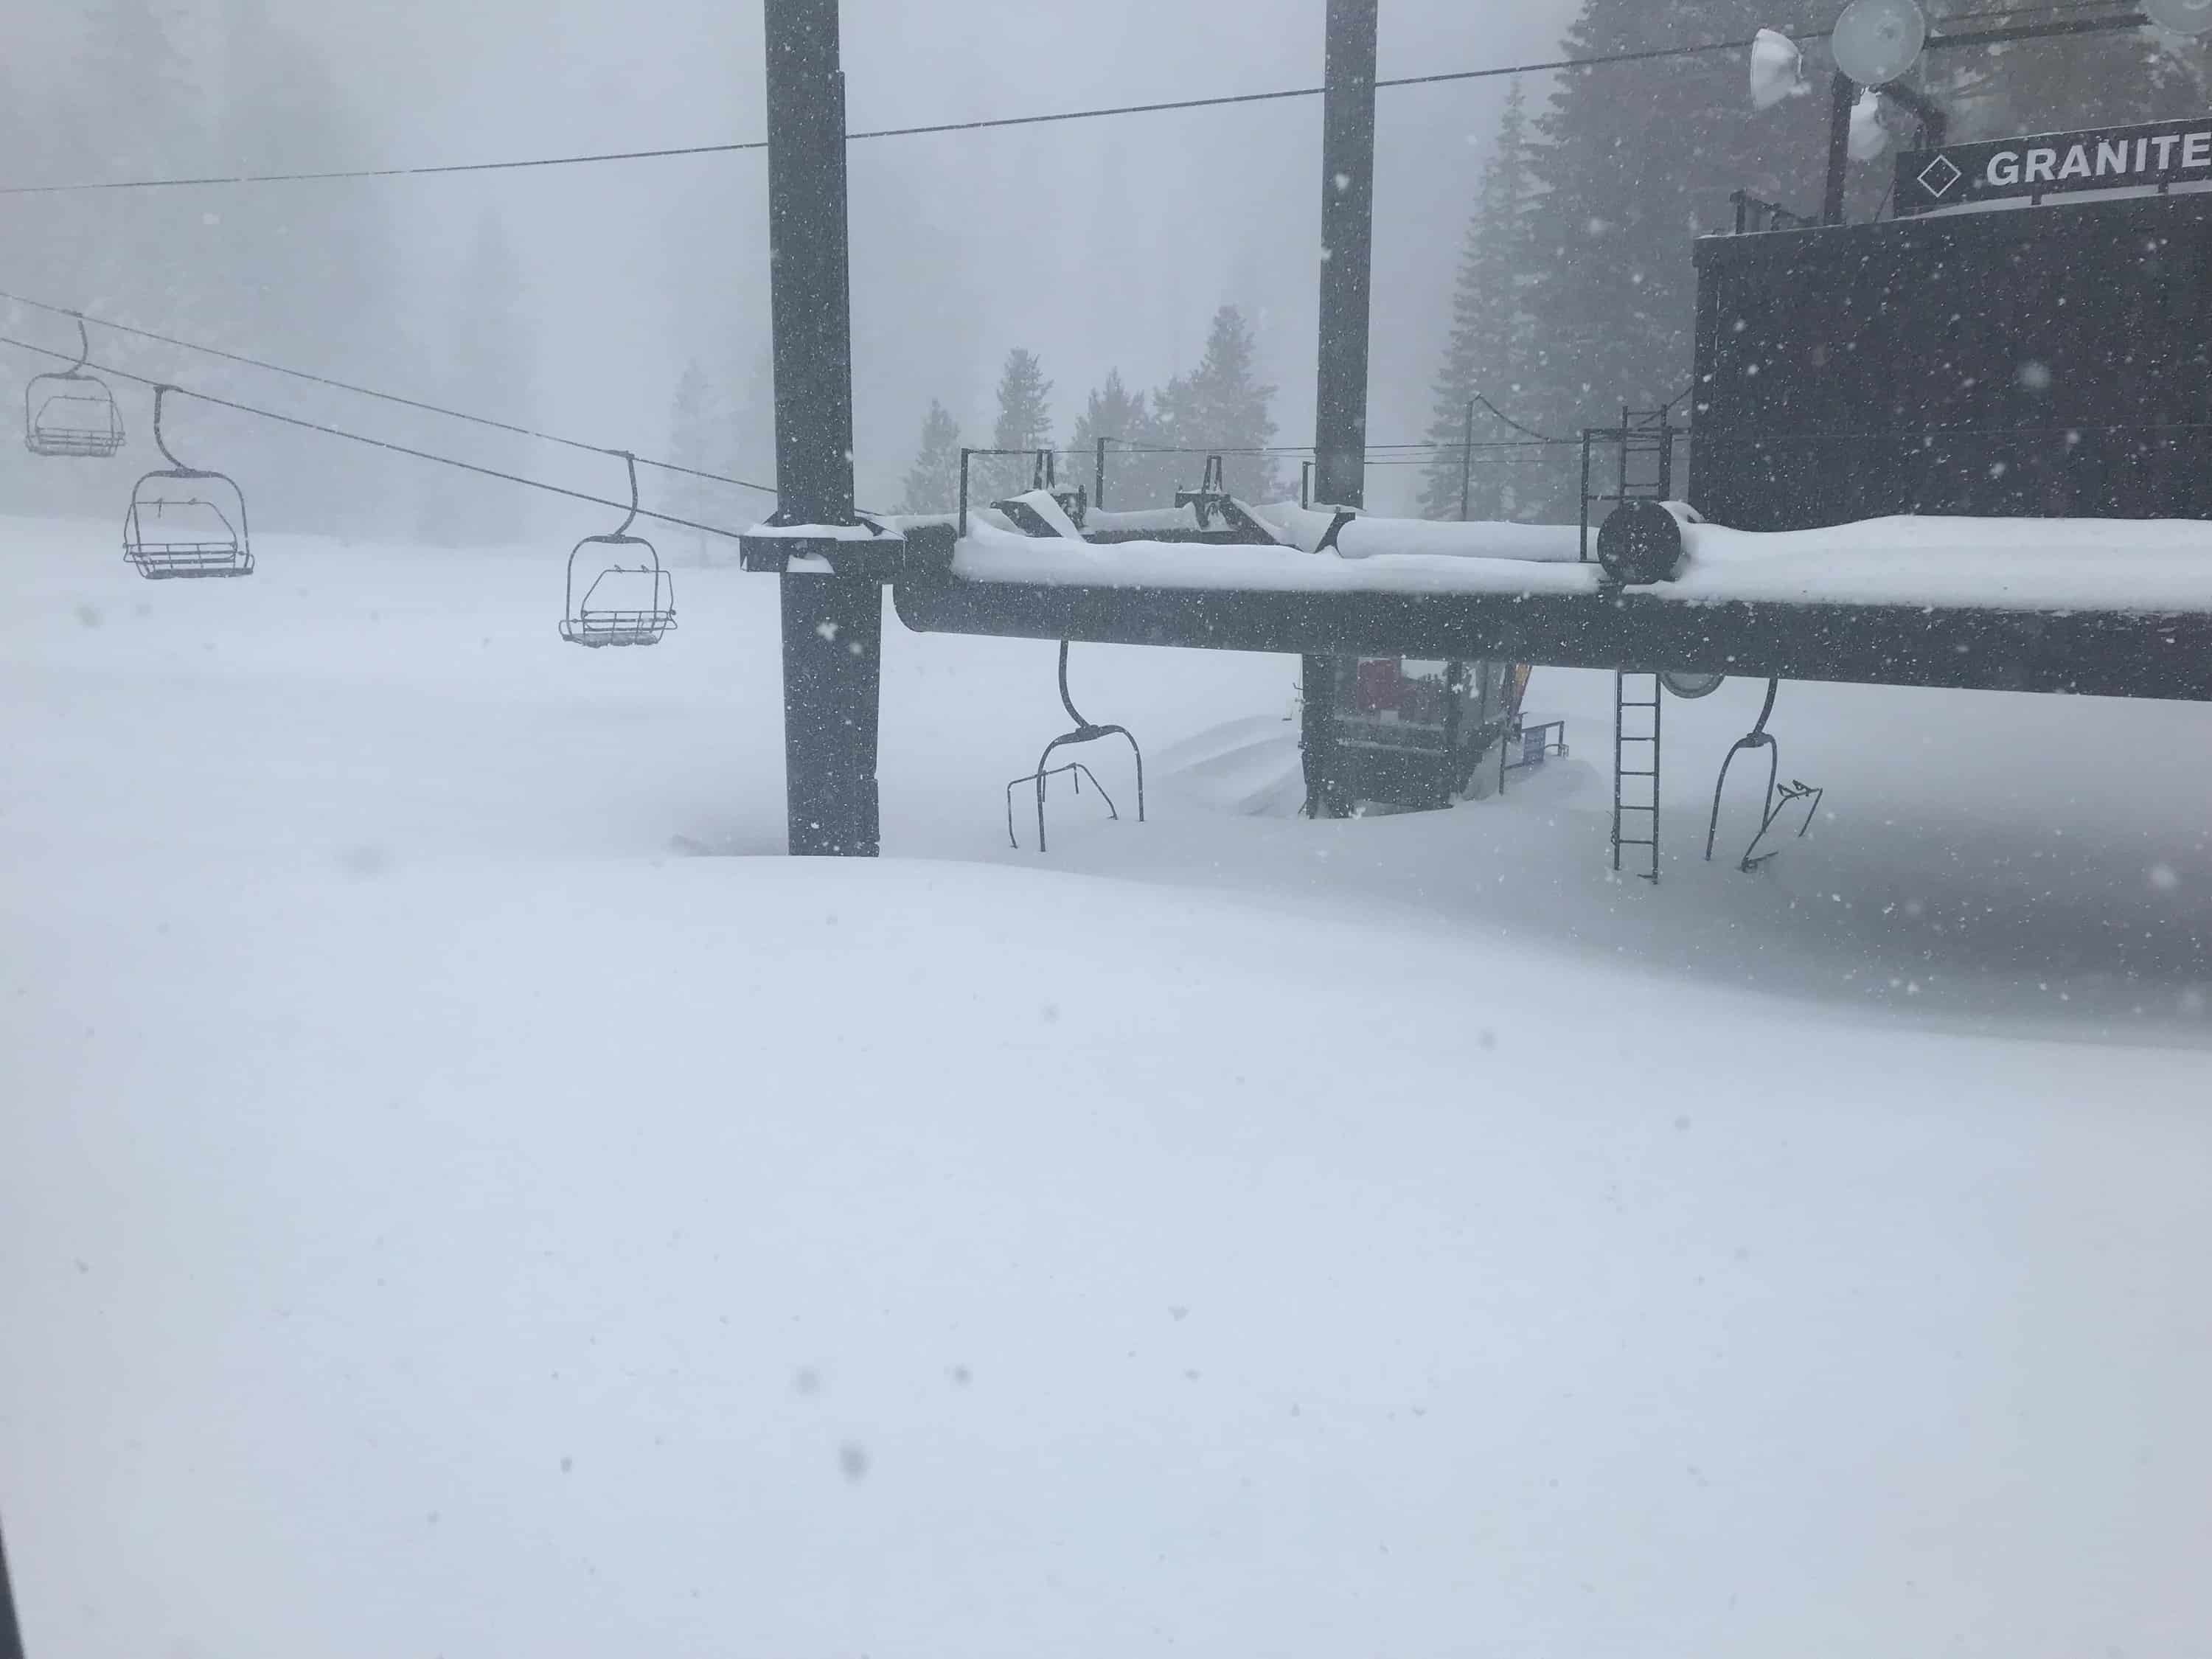 Squaw Snow Report predicted heavy snow, base station of Granite Chief Chair